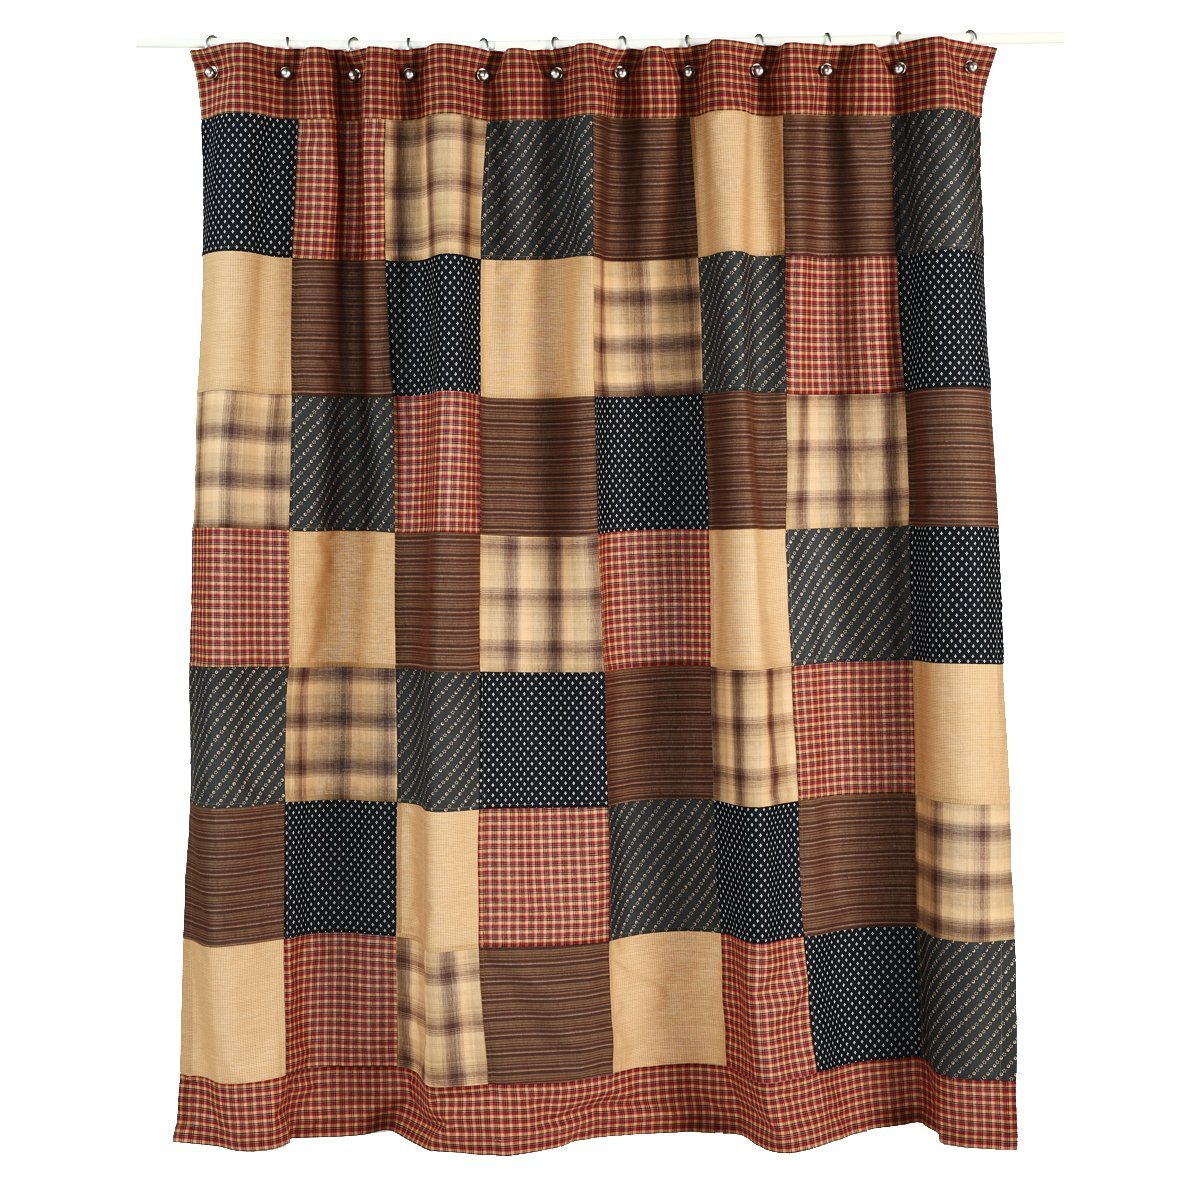 VHC Brands 7732 Shower Curtain 72x72, 72 x 72, Patriotic Patch